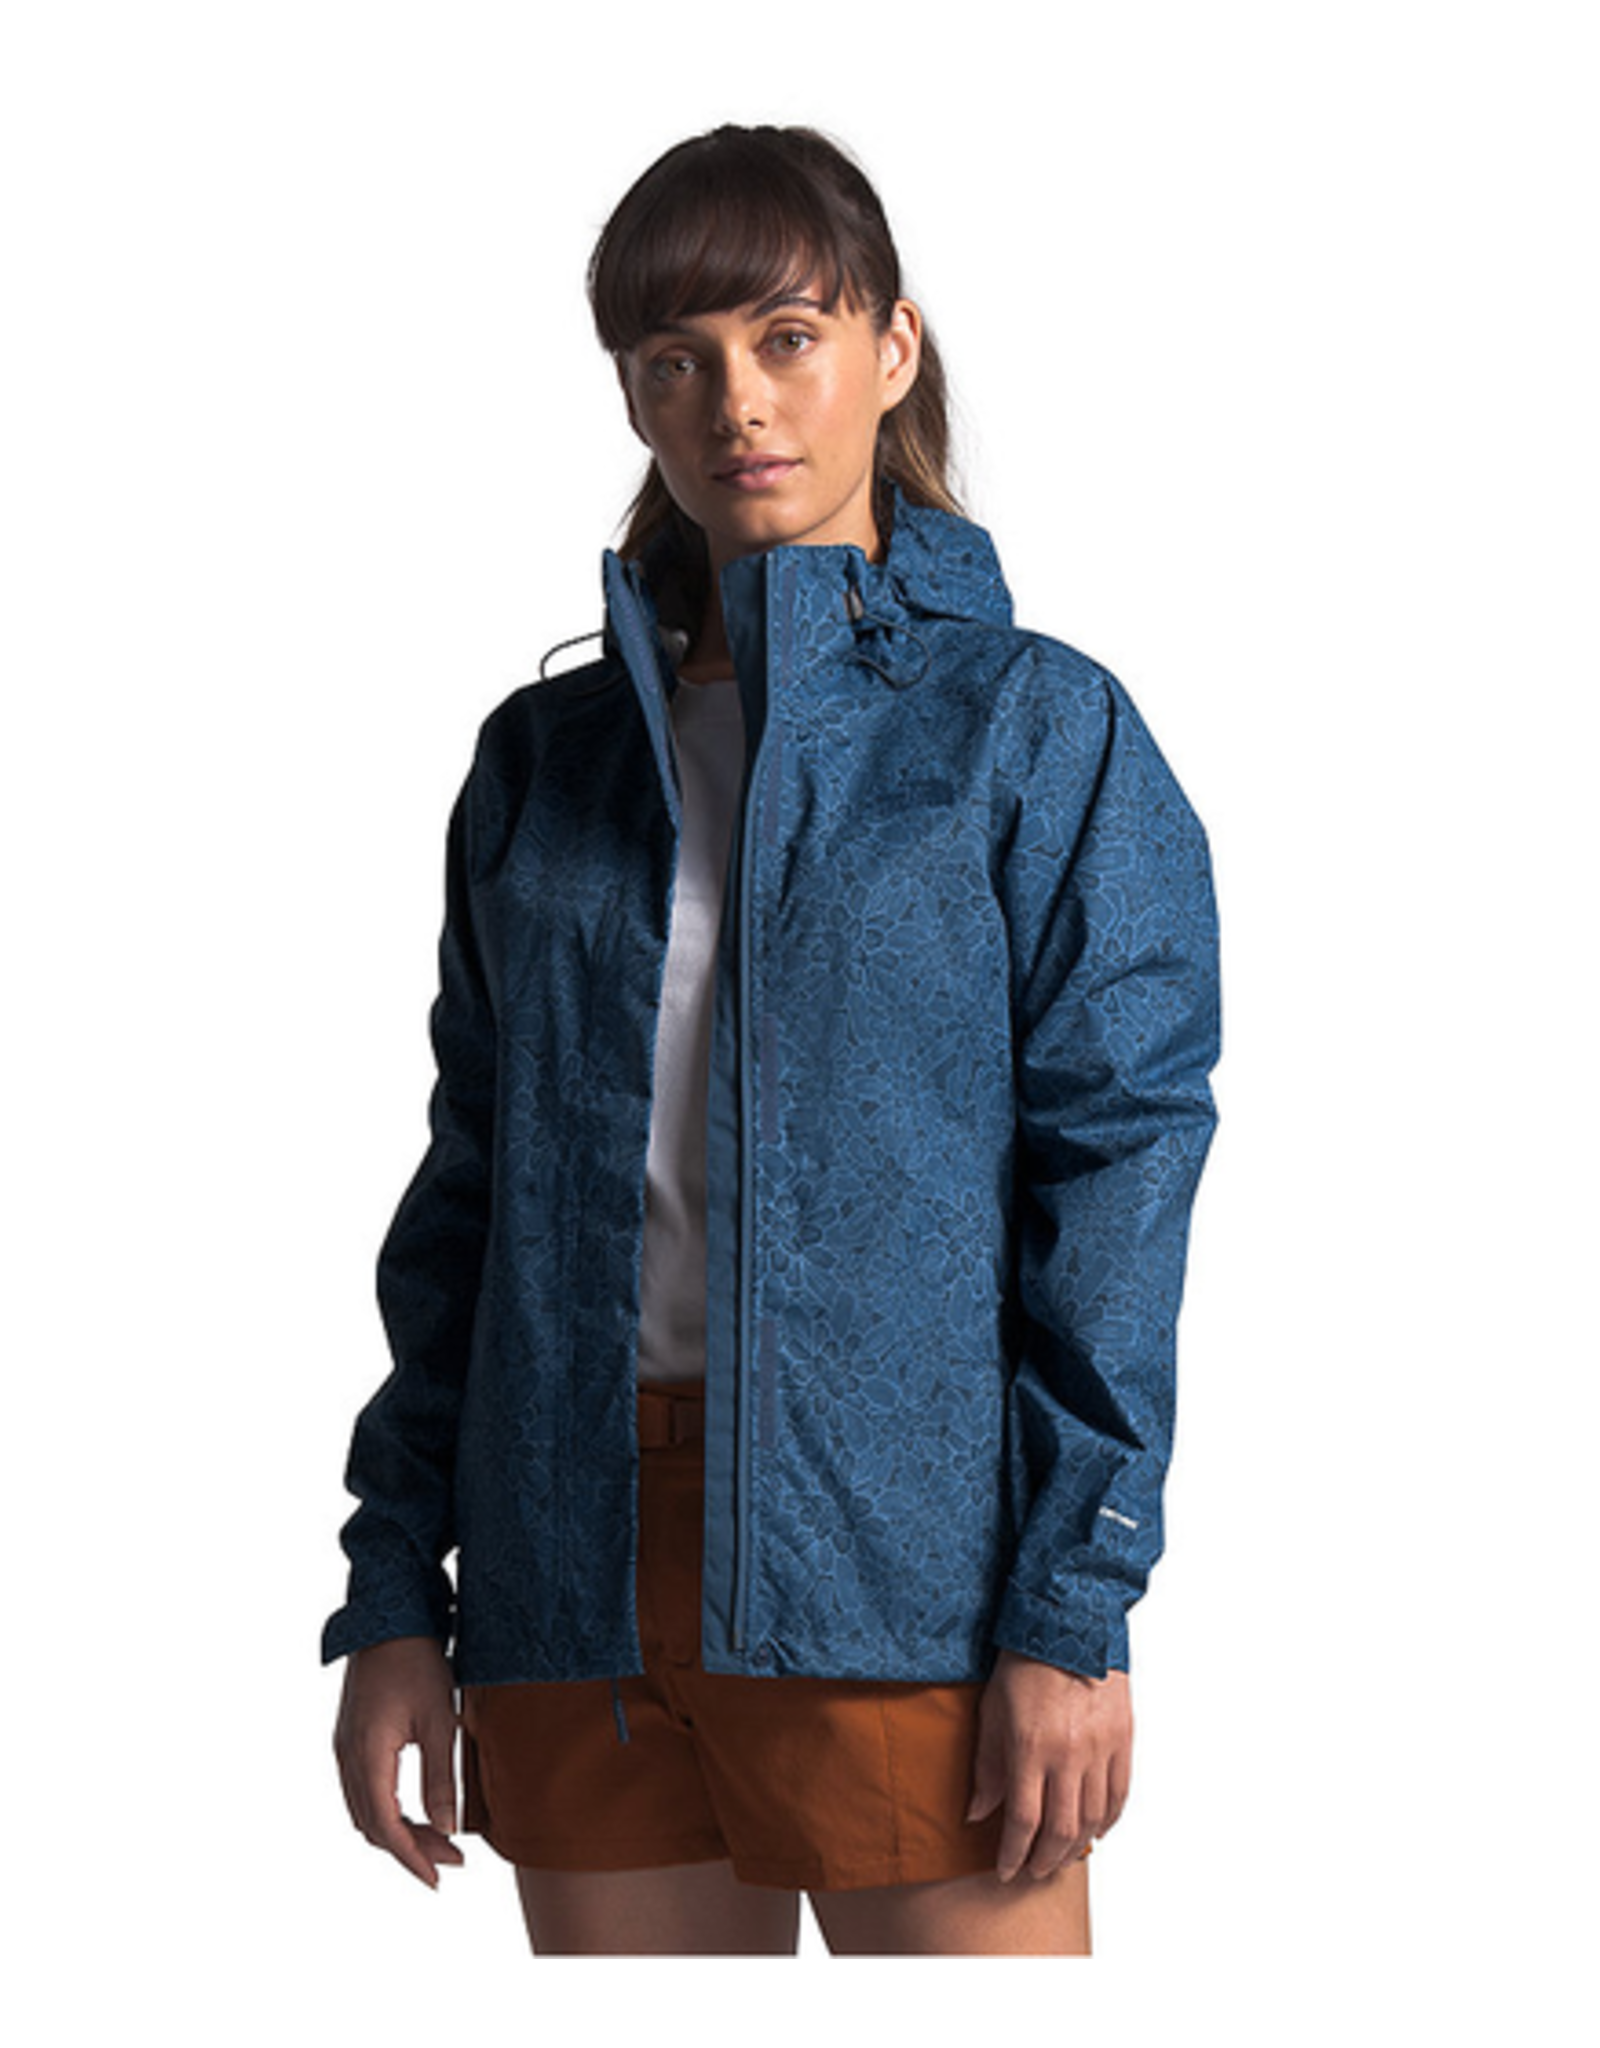 North Face North Face Women's Venture 2 Jacket